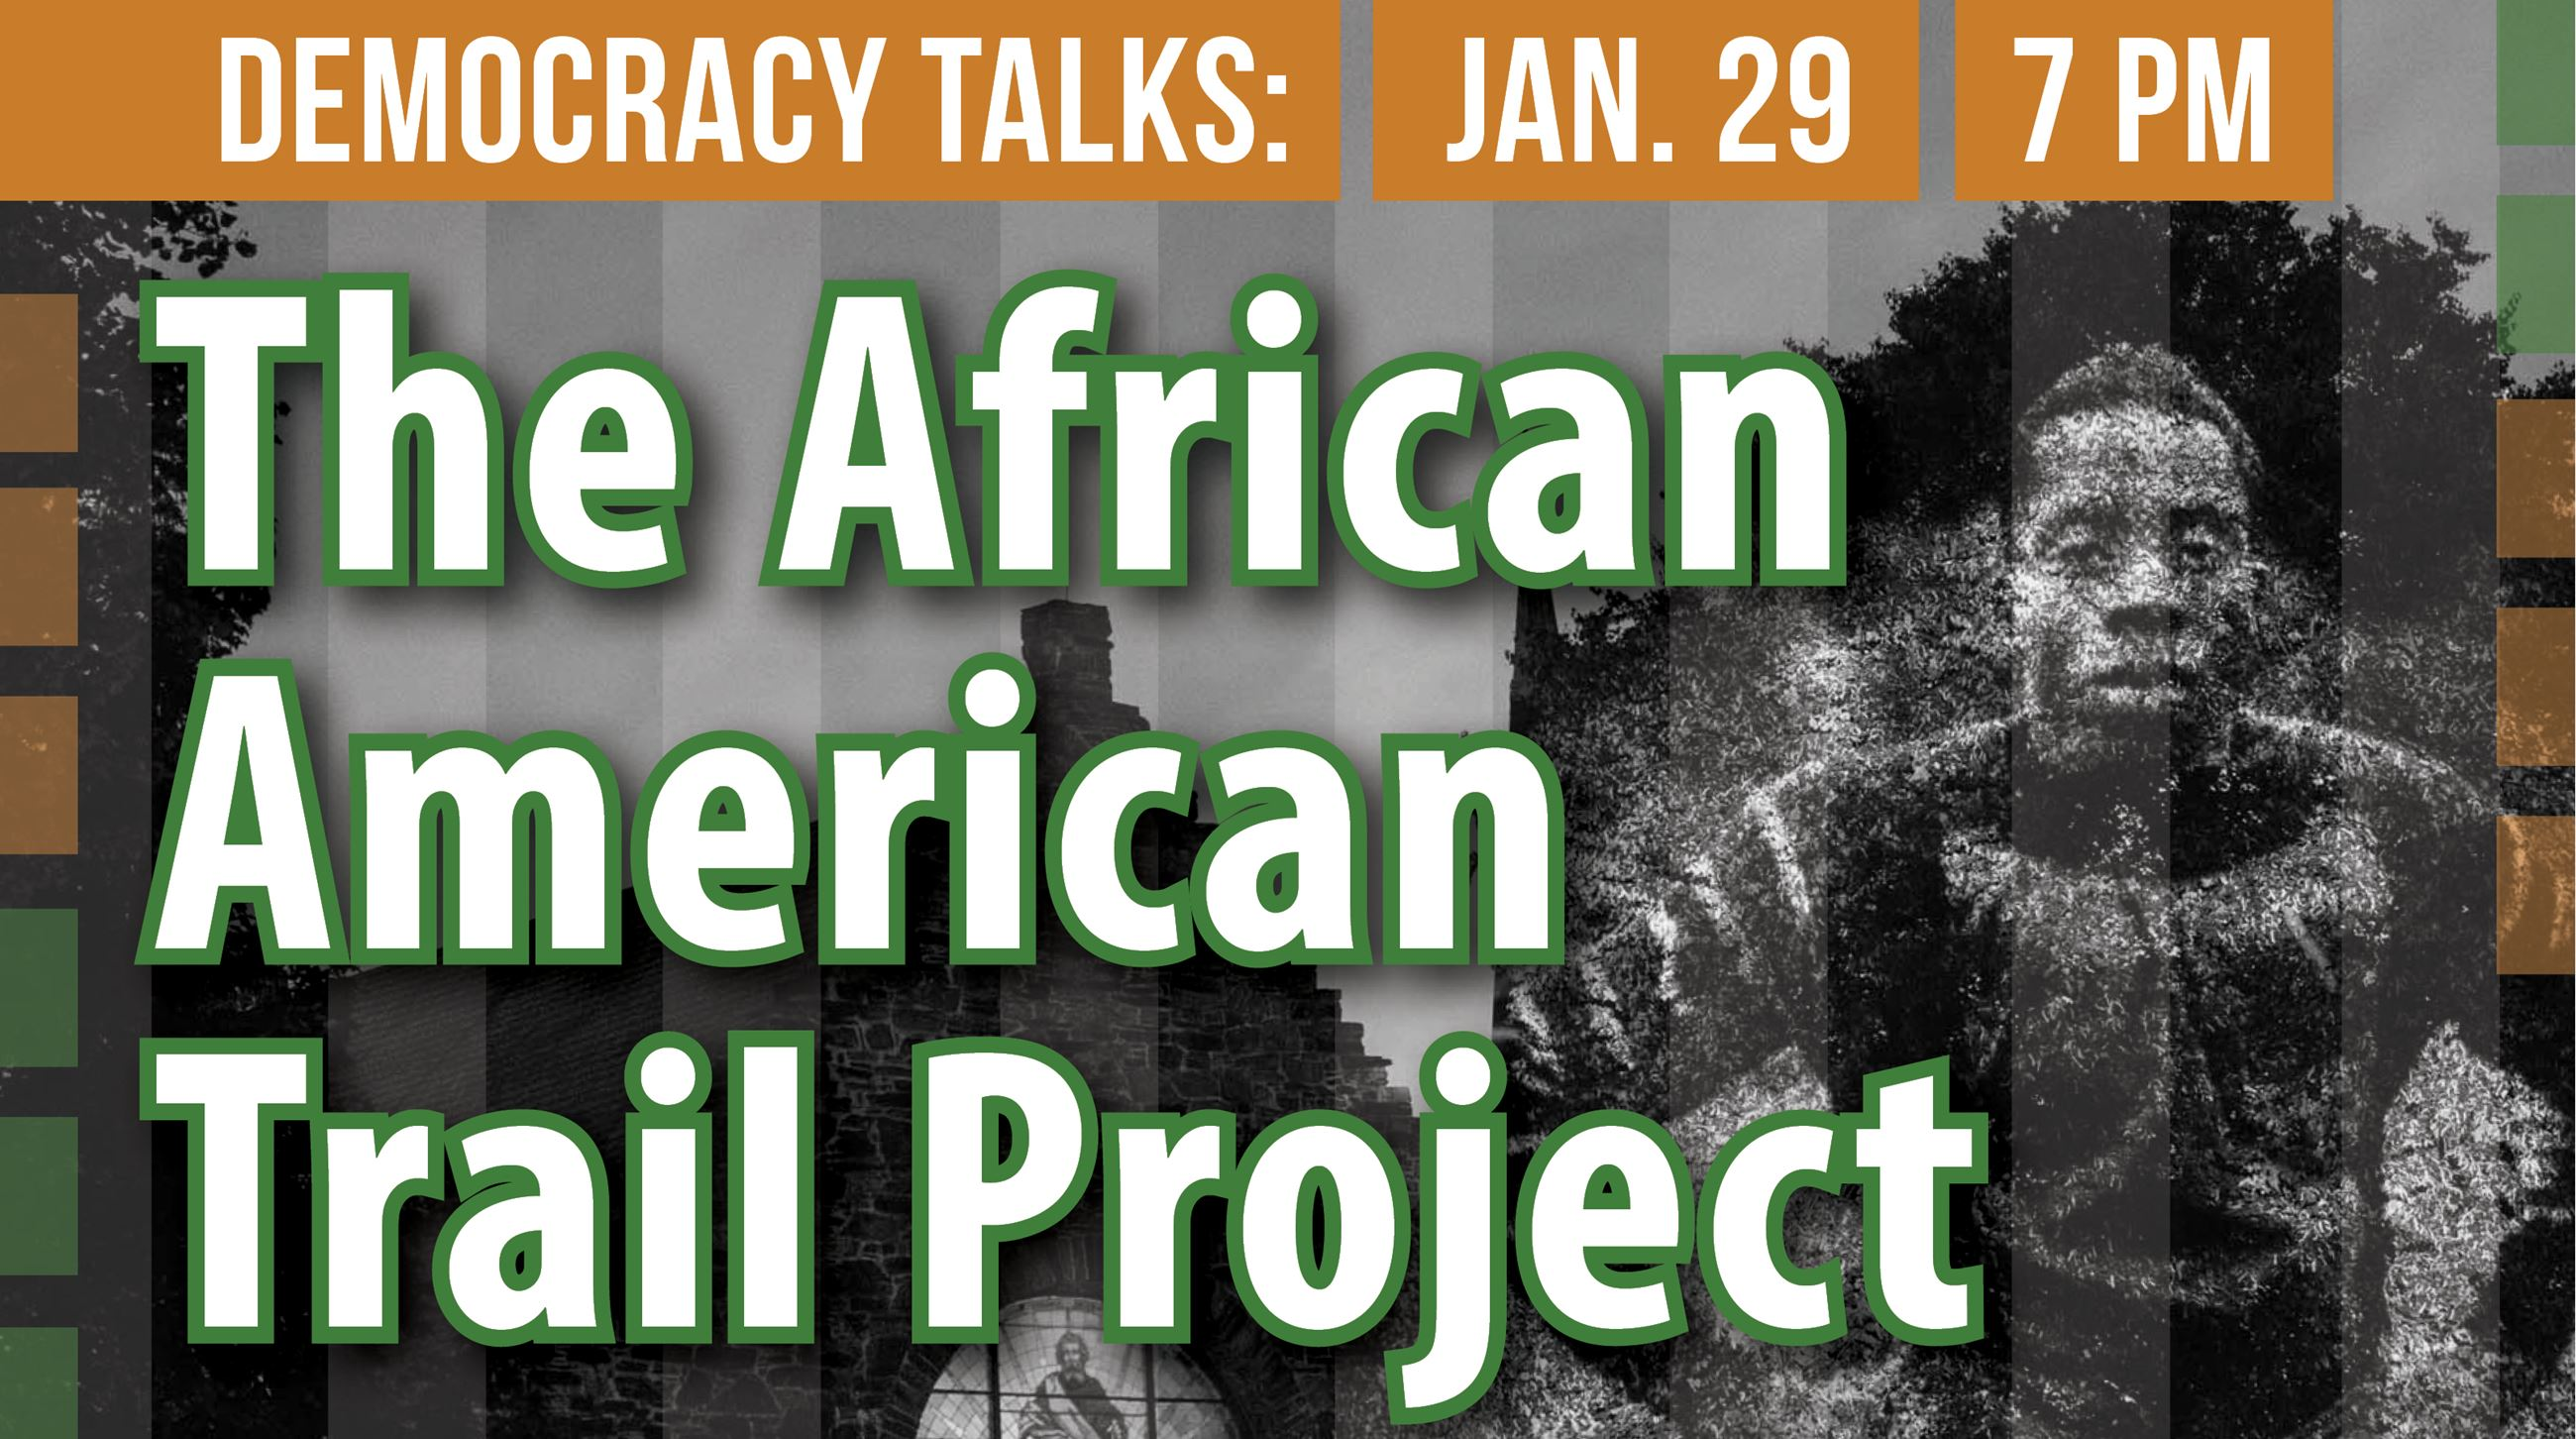 Democracy Talks: The African American Trail Project is Tues. January 29.